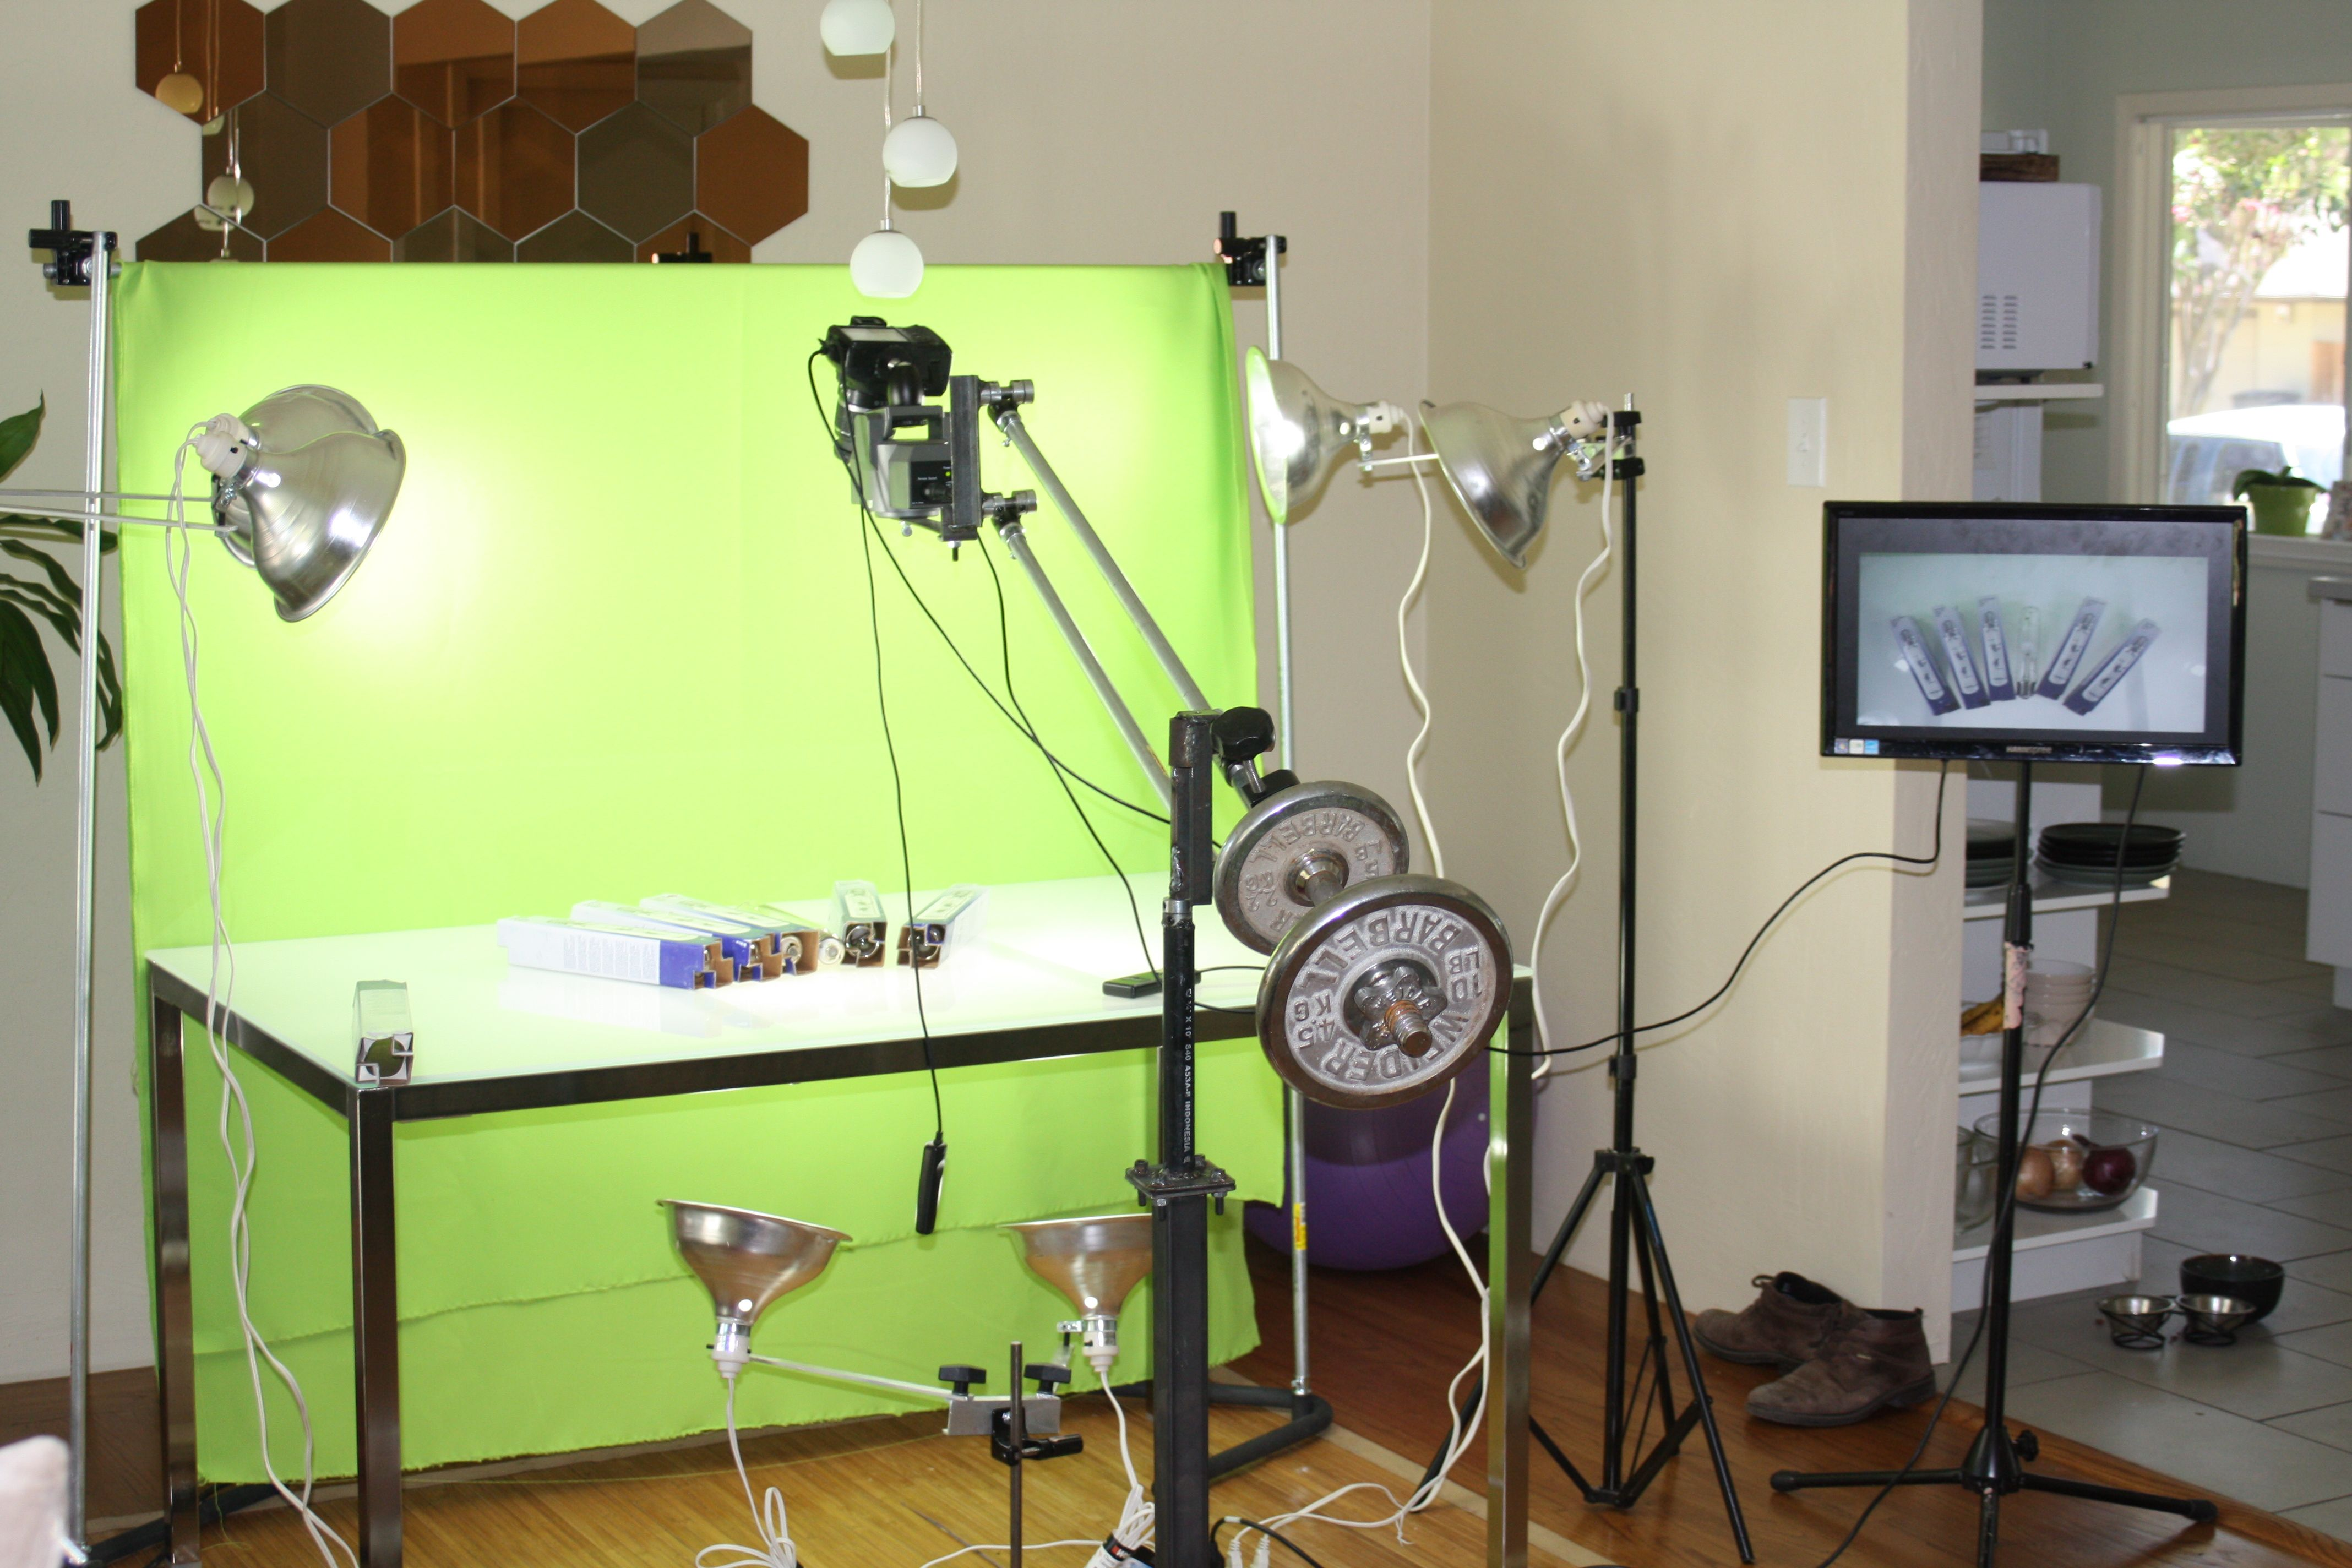 Set up for photographing products. Green screen is used